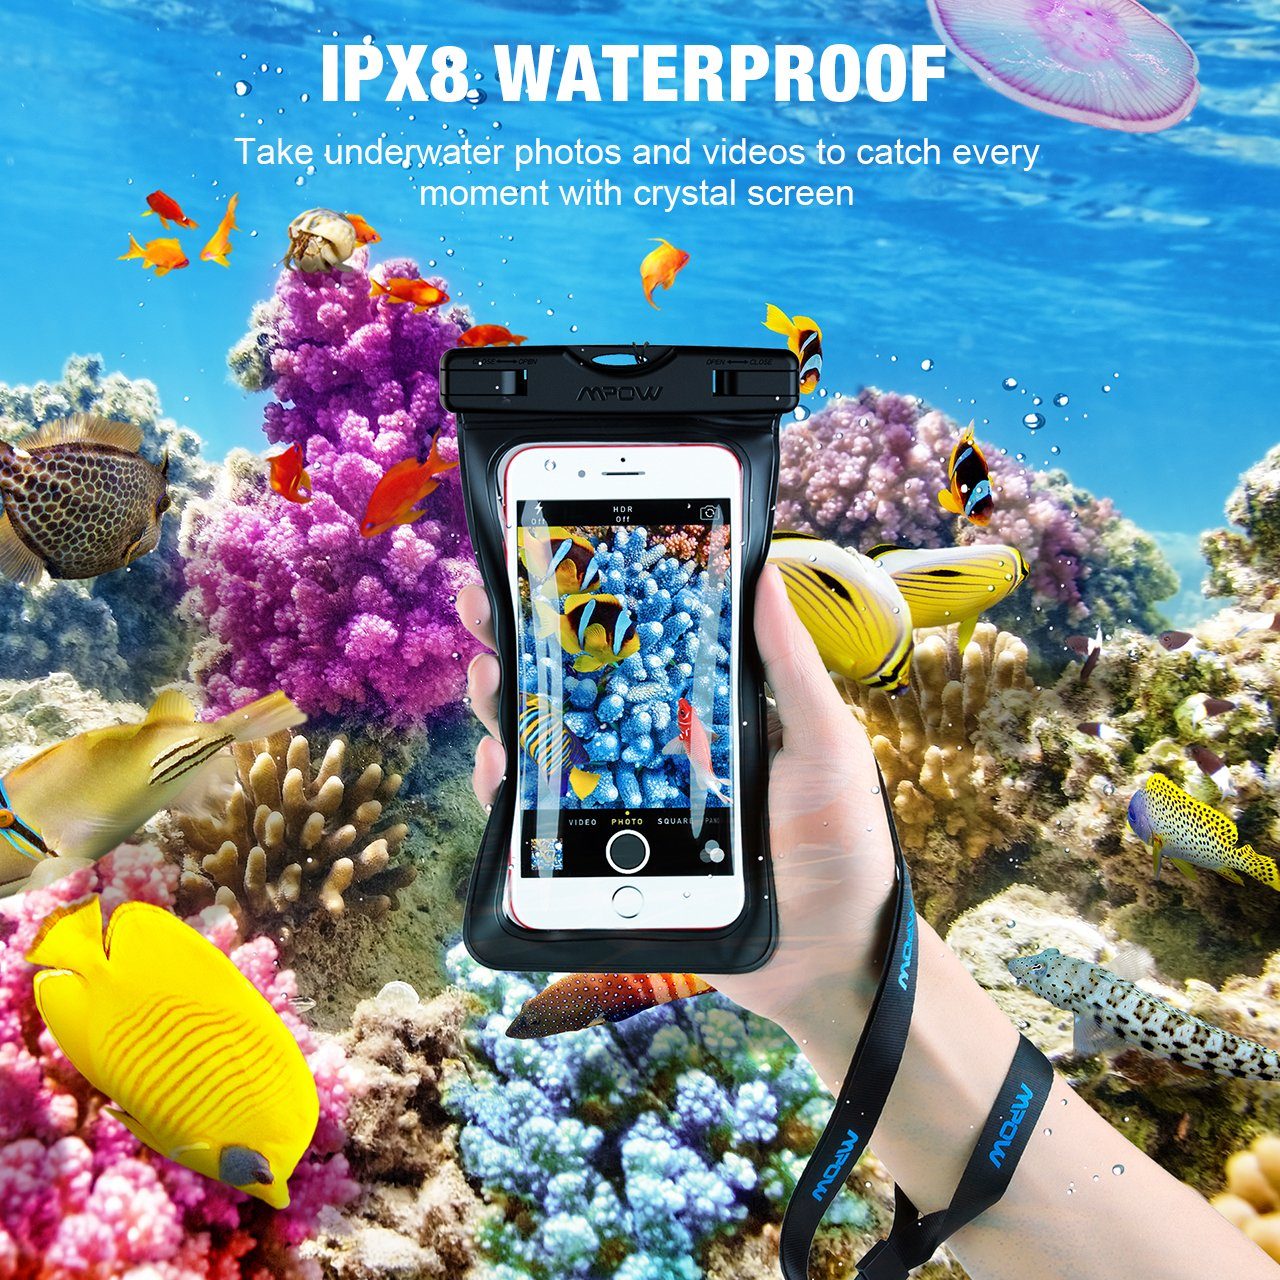 4cdb2e3f57e2ec Black 2-Pack IPX8 Waterproof Phone Pouch Dry Bag Compatible for iPhone  X/8/8plus/7/7plus/6s/6/6s ...